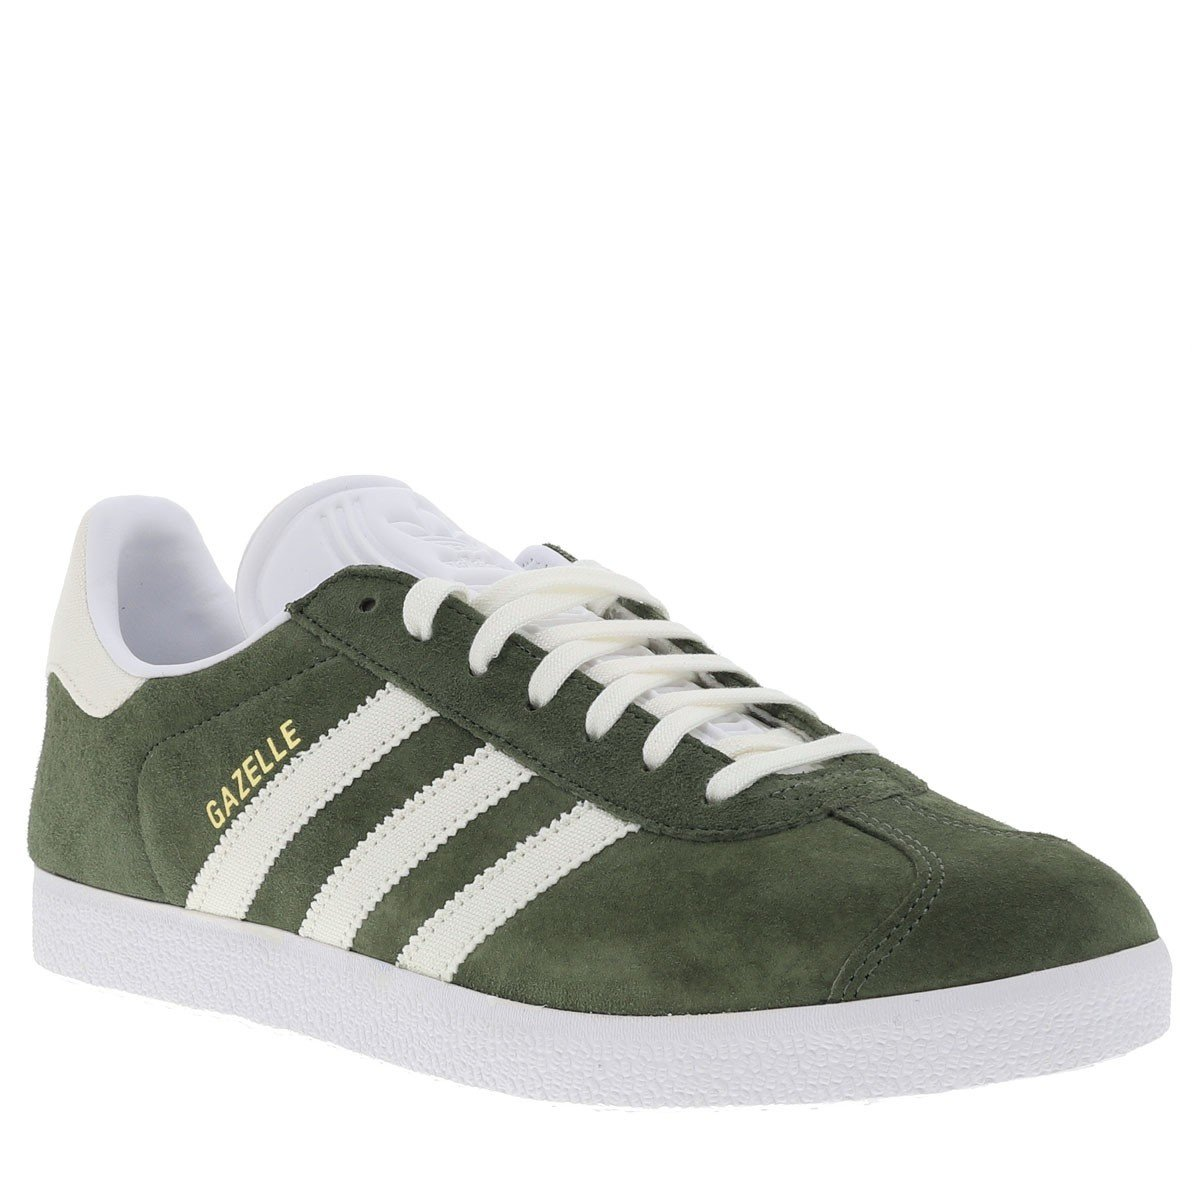 authorized site hot new products hot product ADIDAS ORIGINALS Baskets Gazelle homme vert